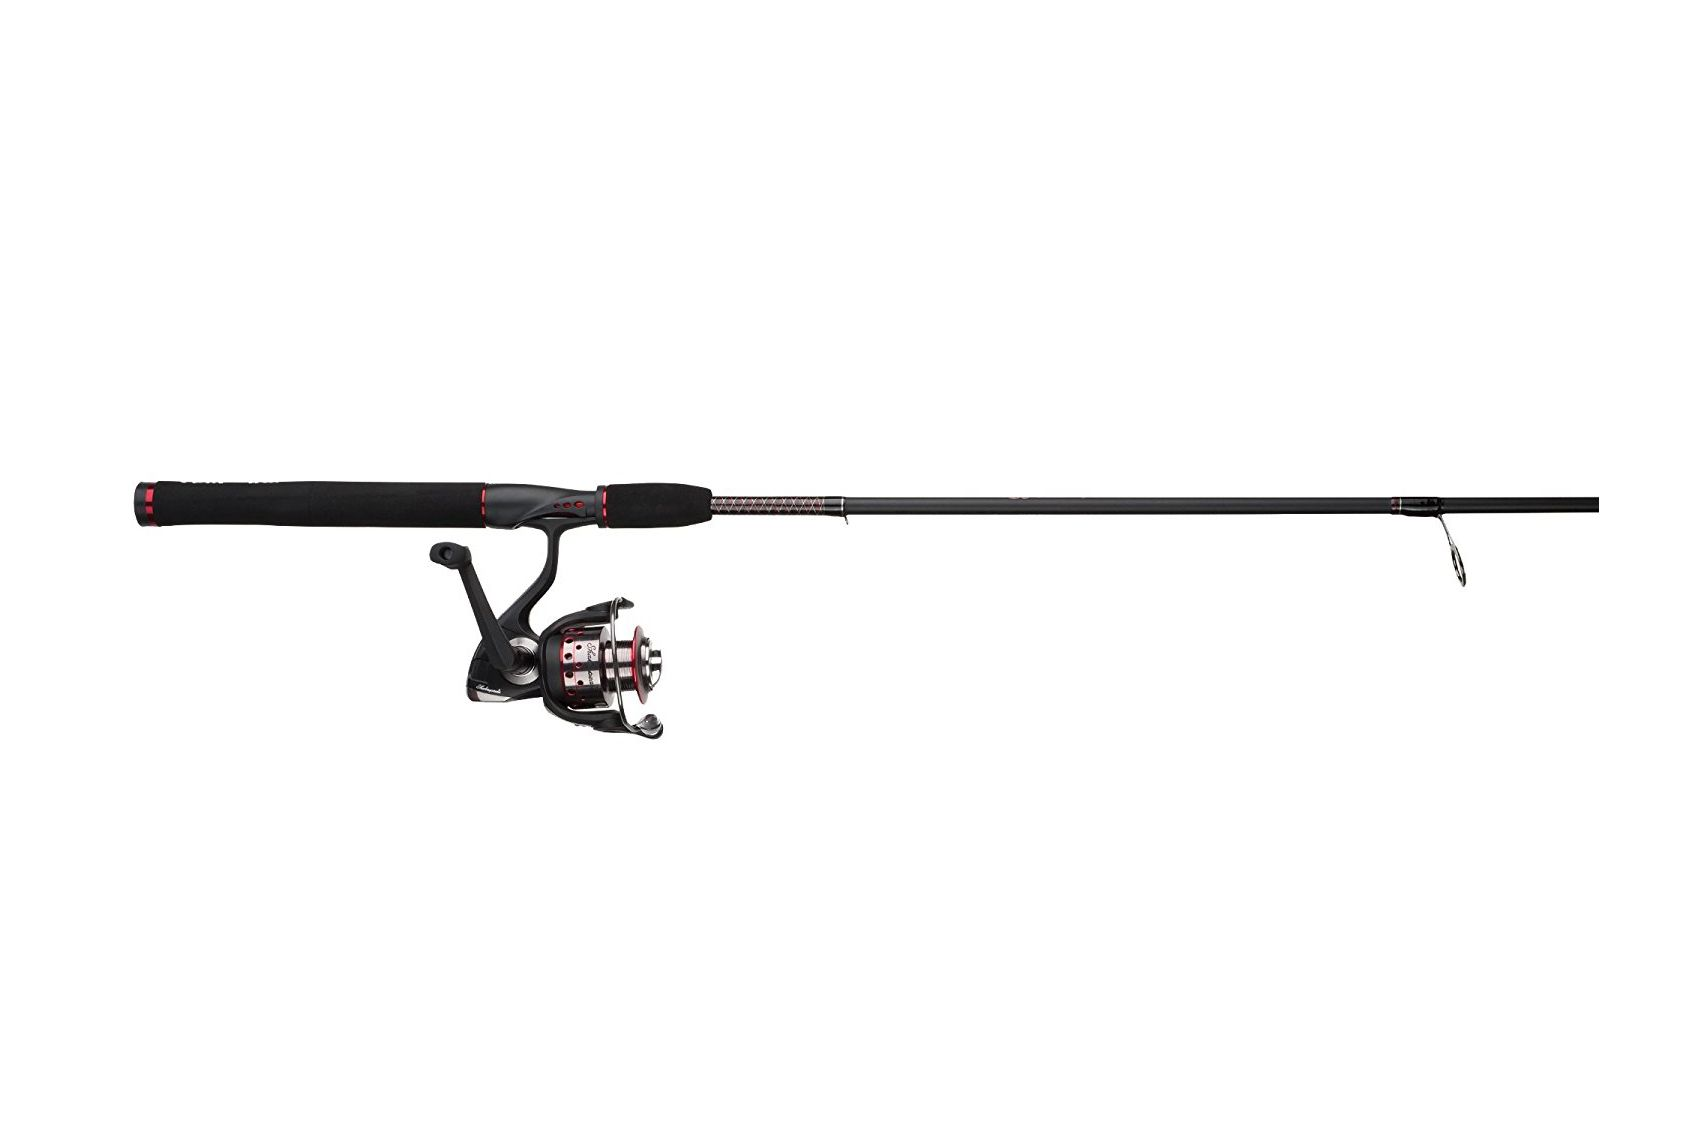 Ugly Stik GX2 Spinning Fishing Reel and Rod Combo